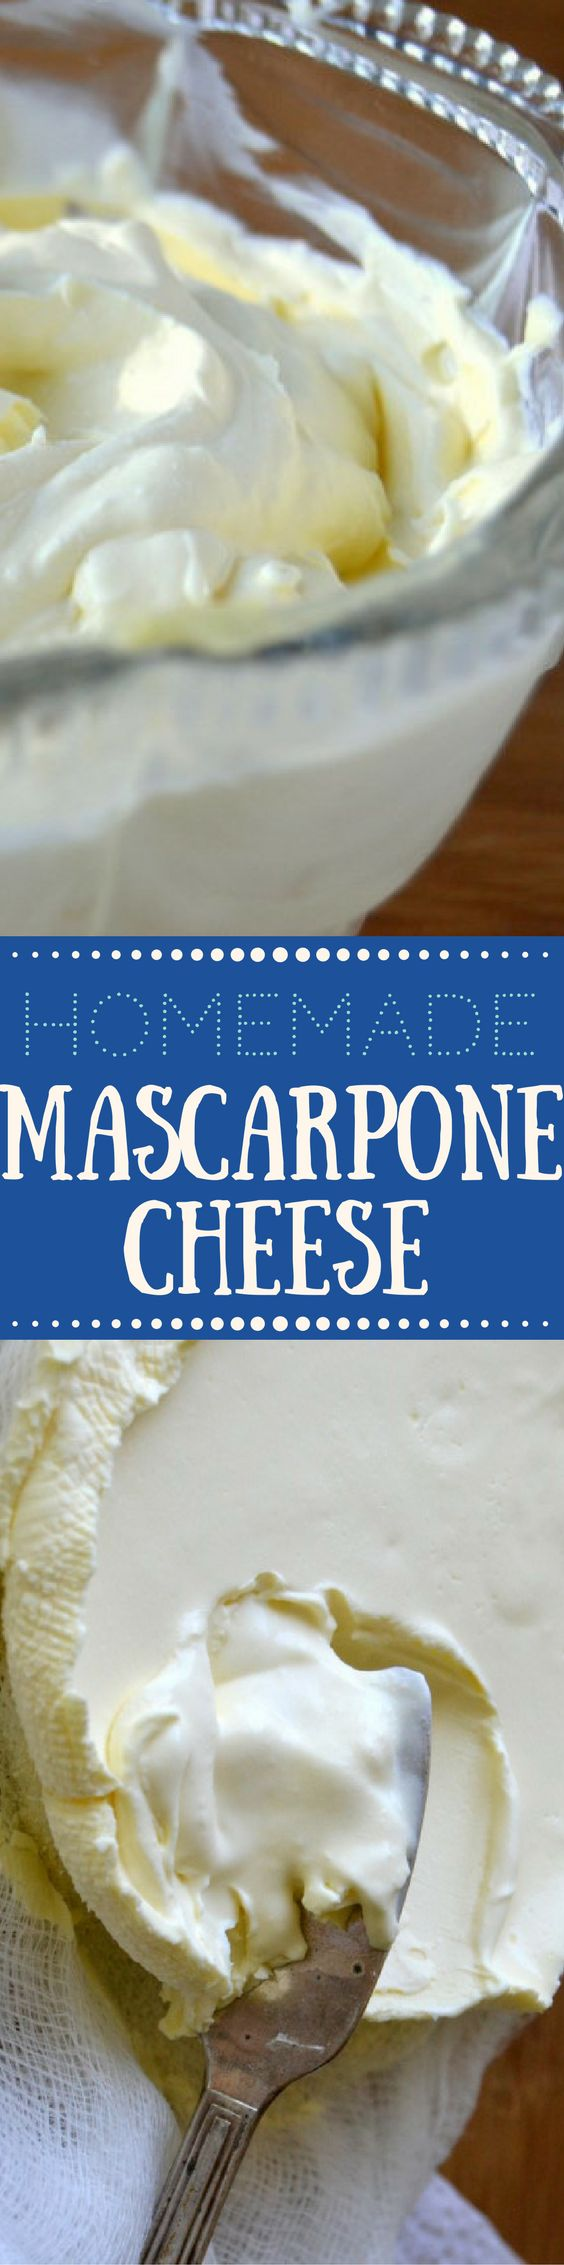 reamy homemade mascarpone cheese is easy and fun to make right in your own kitchen --- use it in all sorts of authentic Italian recipes, both sweet and savory --- and save a lot of money while you're at it! | DIY | Cheese making |